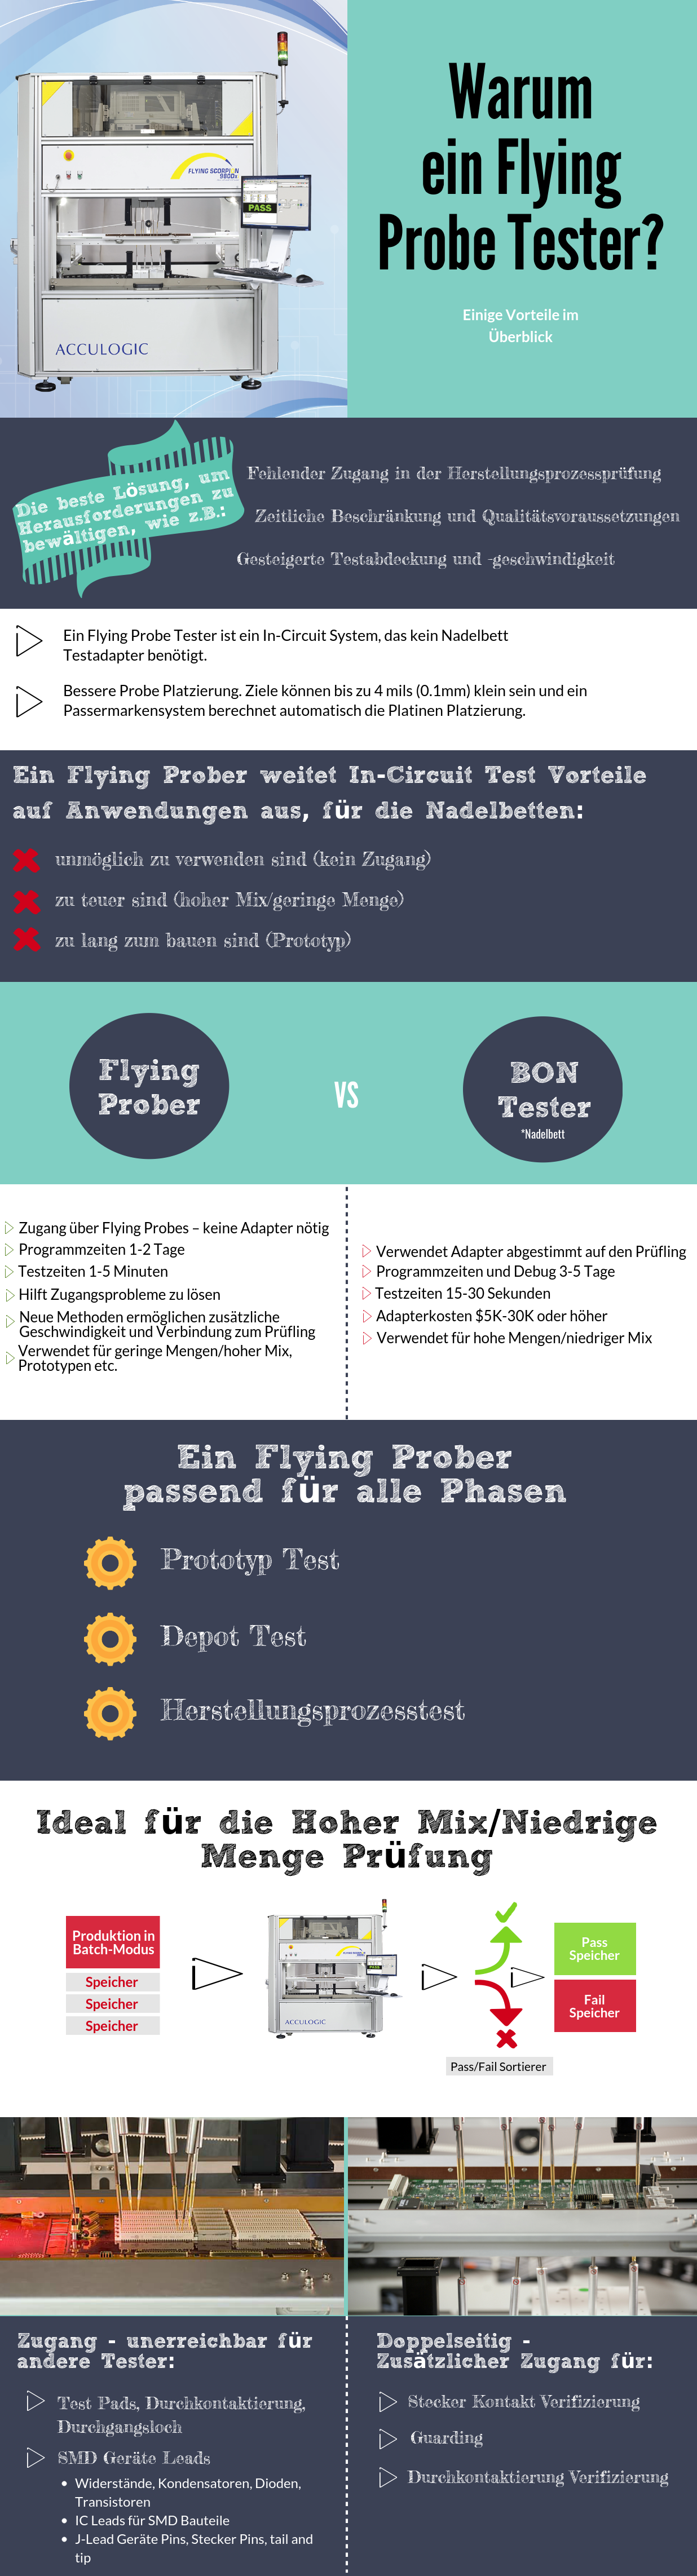 Flying Probe Infographic – Ein Überblick